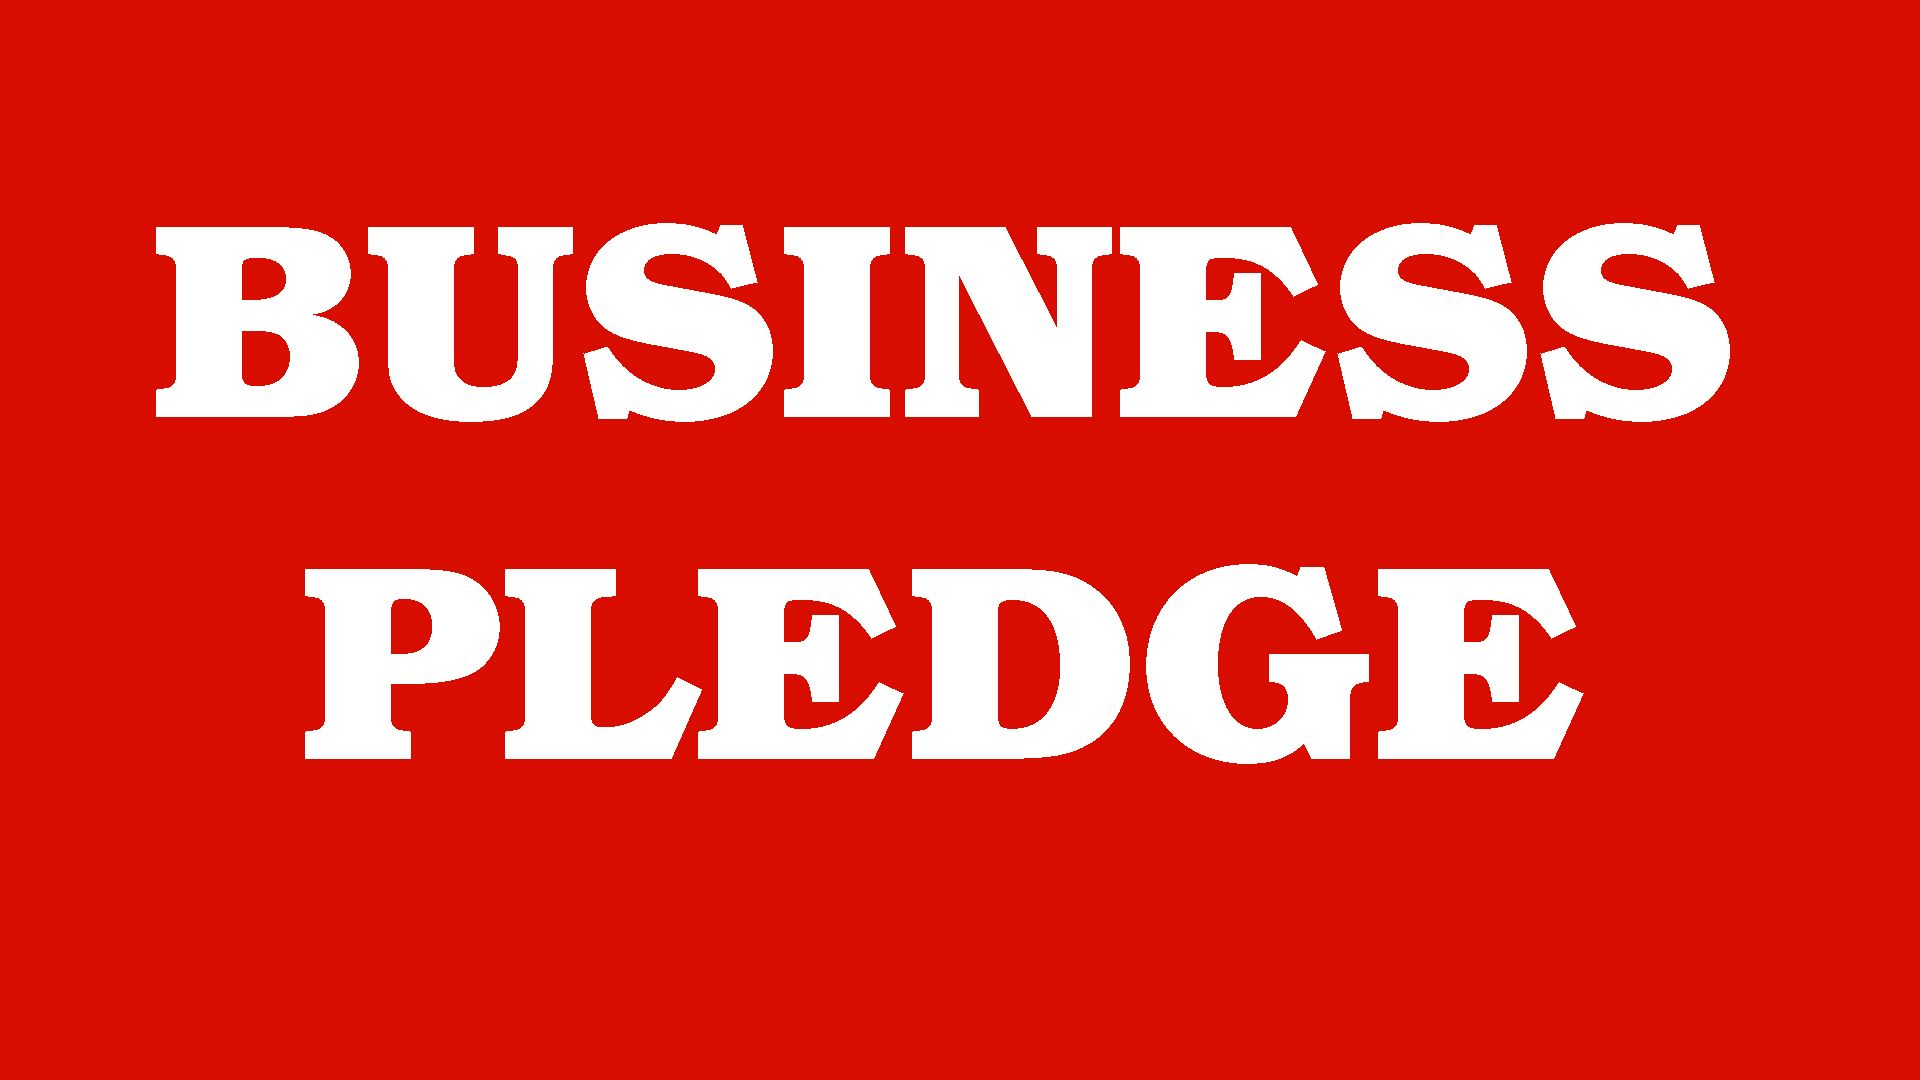 Business Pledge